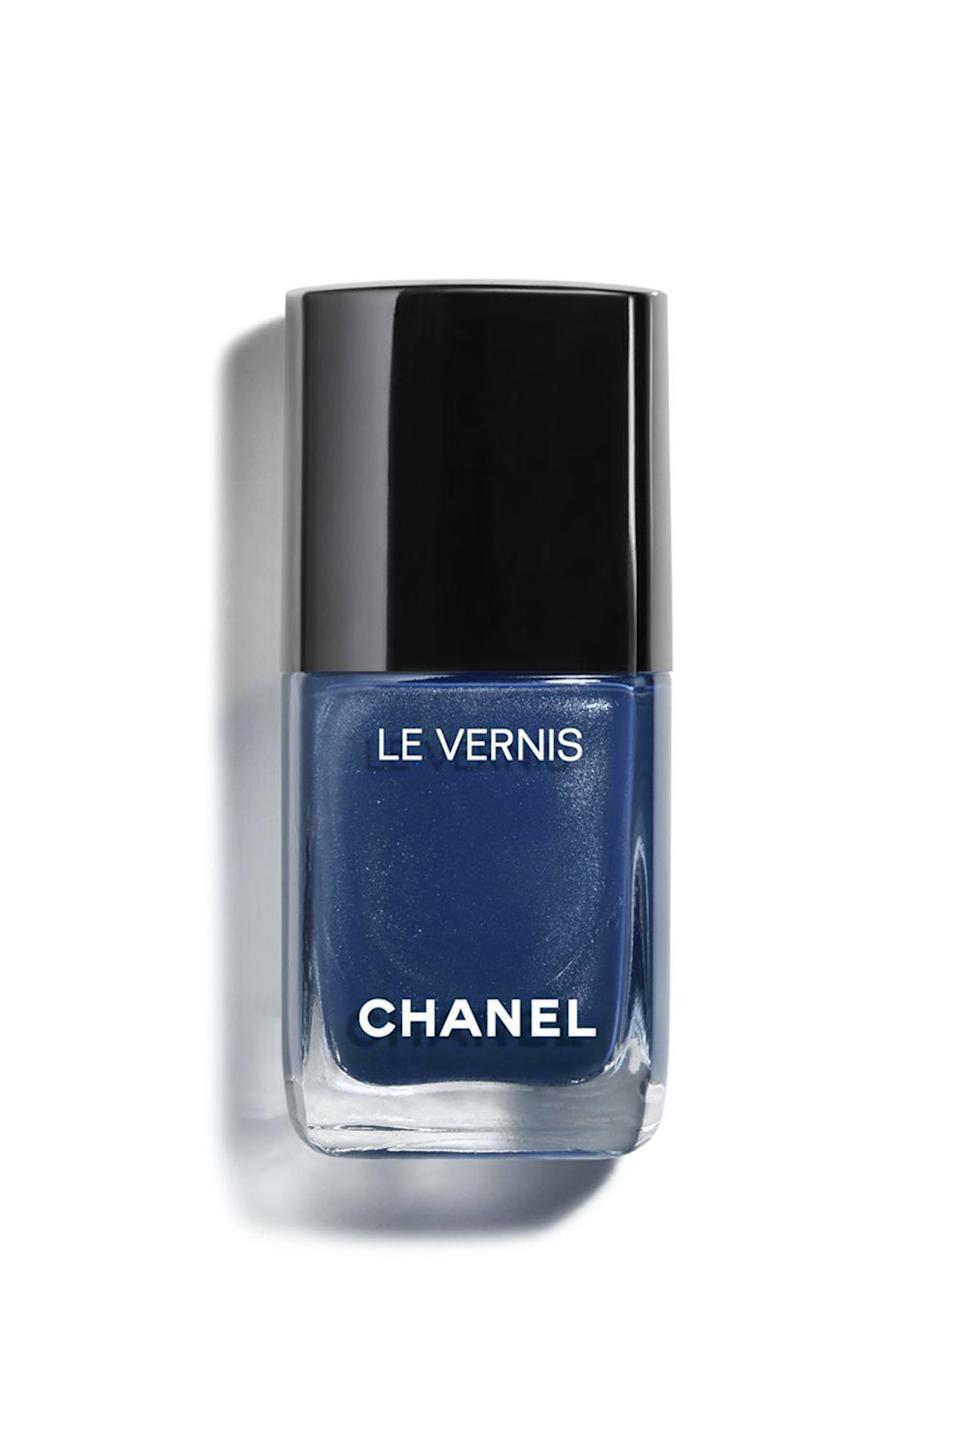 """<p><strong>Chanel Le Vernis Nail Color in Radiant Blue</strong></p><p>barneys.com</p><p><strong>$28.00</strong></p><p><a href=""""https://www.barneys.com/product/chanel-le-vernis-nail-color-506399710.html?gclid=Cj0KCQjw5rbsBRCFARIsAGEYRwcb8DPYHzh_uUolSEYsqjjDb2PLhTlYY7uFNYb0mo9Not5GYt6cGn0aAh4_EALw_wcB&gclsrc=aw.ds"""" rel=""""nofollow noopener"""" target=""""_blank"""" data-ylk=""""slk:SHOP IT"""" class=""""link rapid-noclick-resp"""">SHOP IT</a></p><p>Put your basic black shade you always wear down, and try this sophisticated sapphire that'll look just as chic. </p>"""